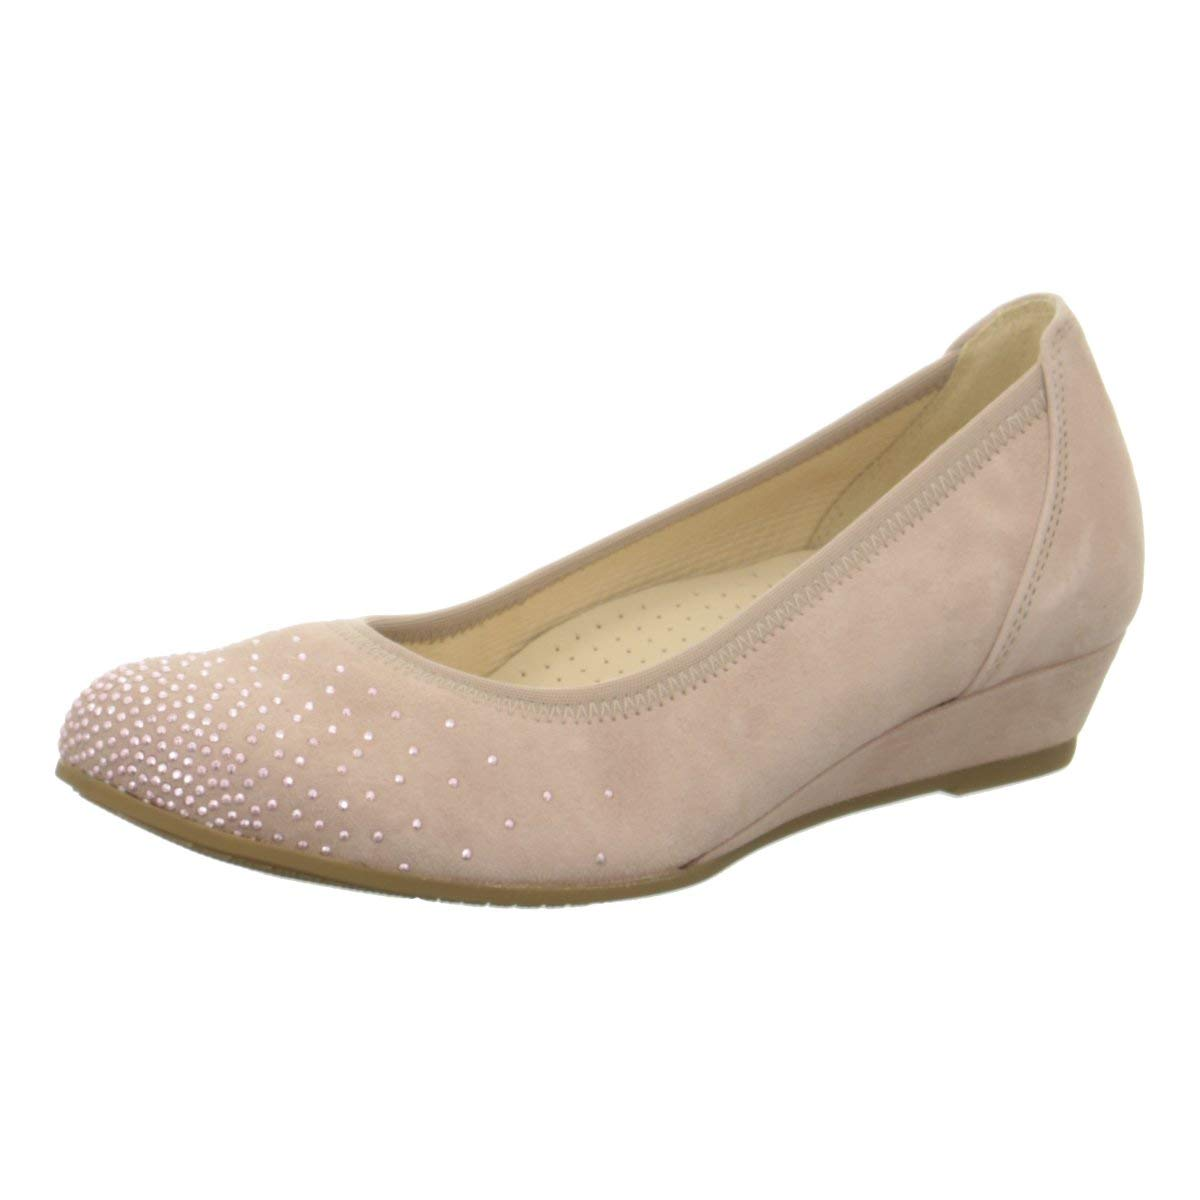 Gabor Damen Slipper 22.694.23 Rosa 627023